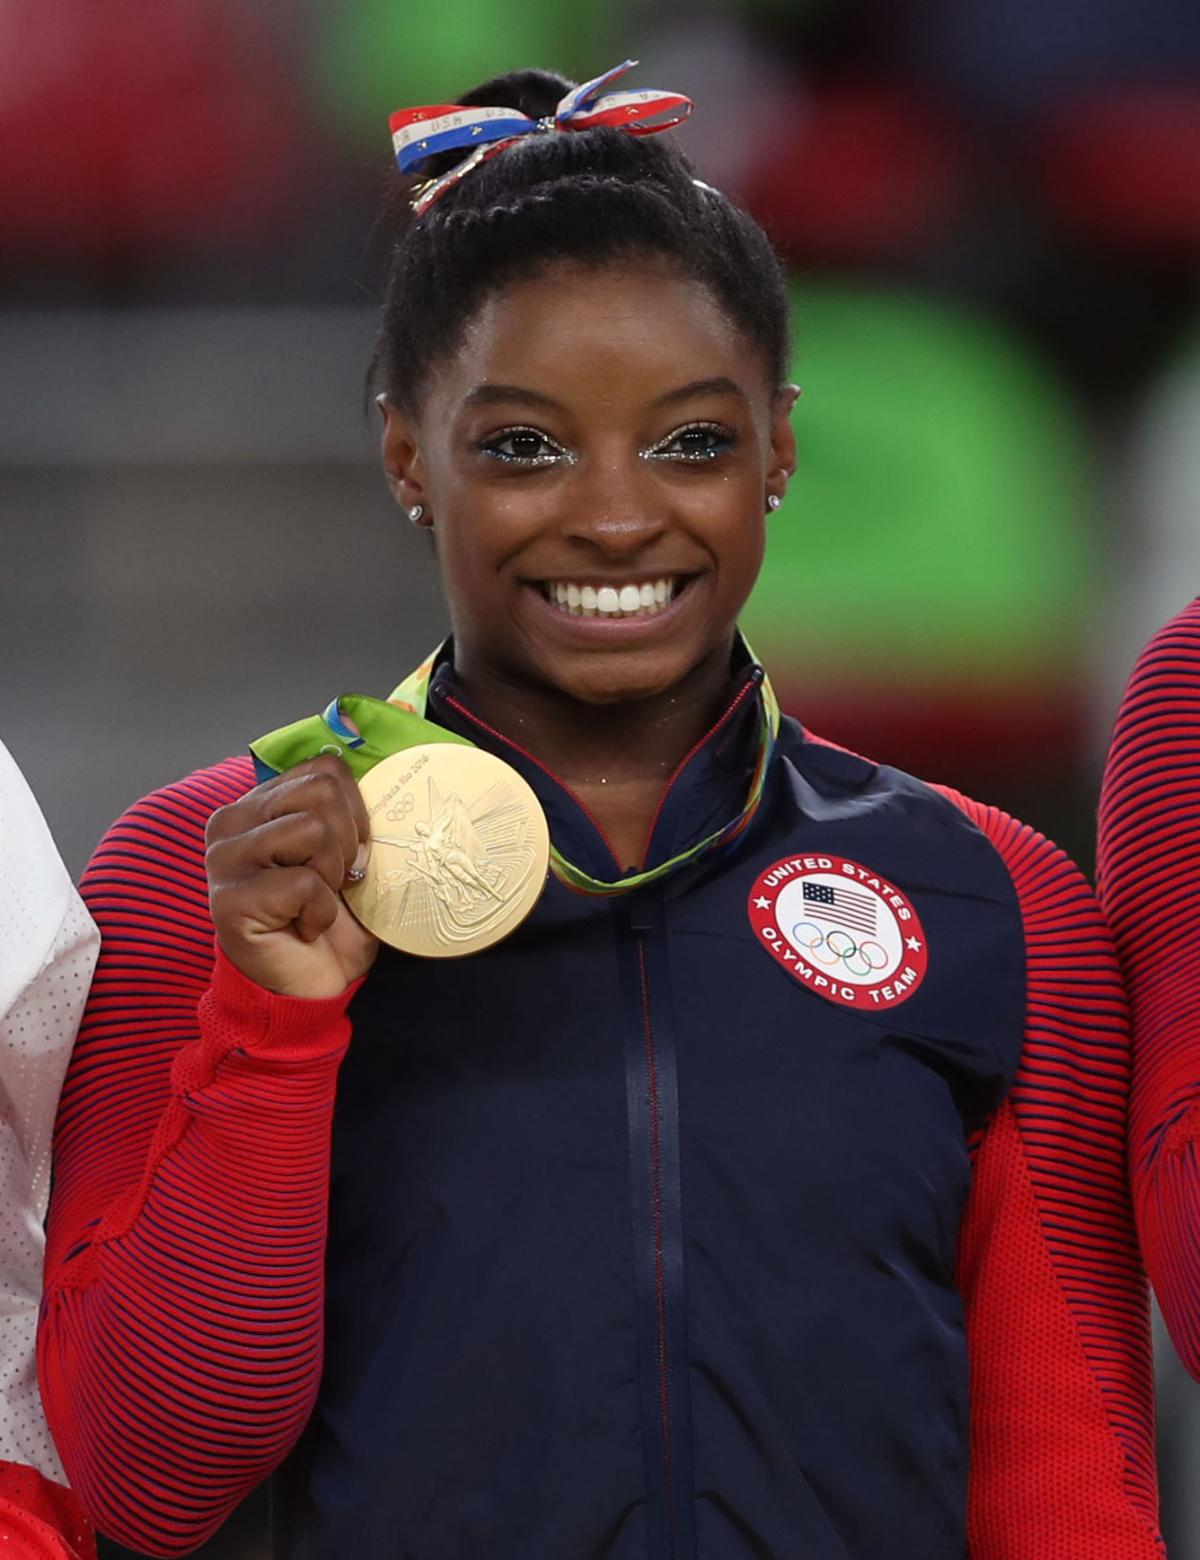 Biles calls USA interim training base 'good start'